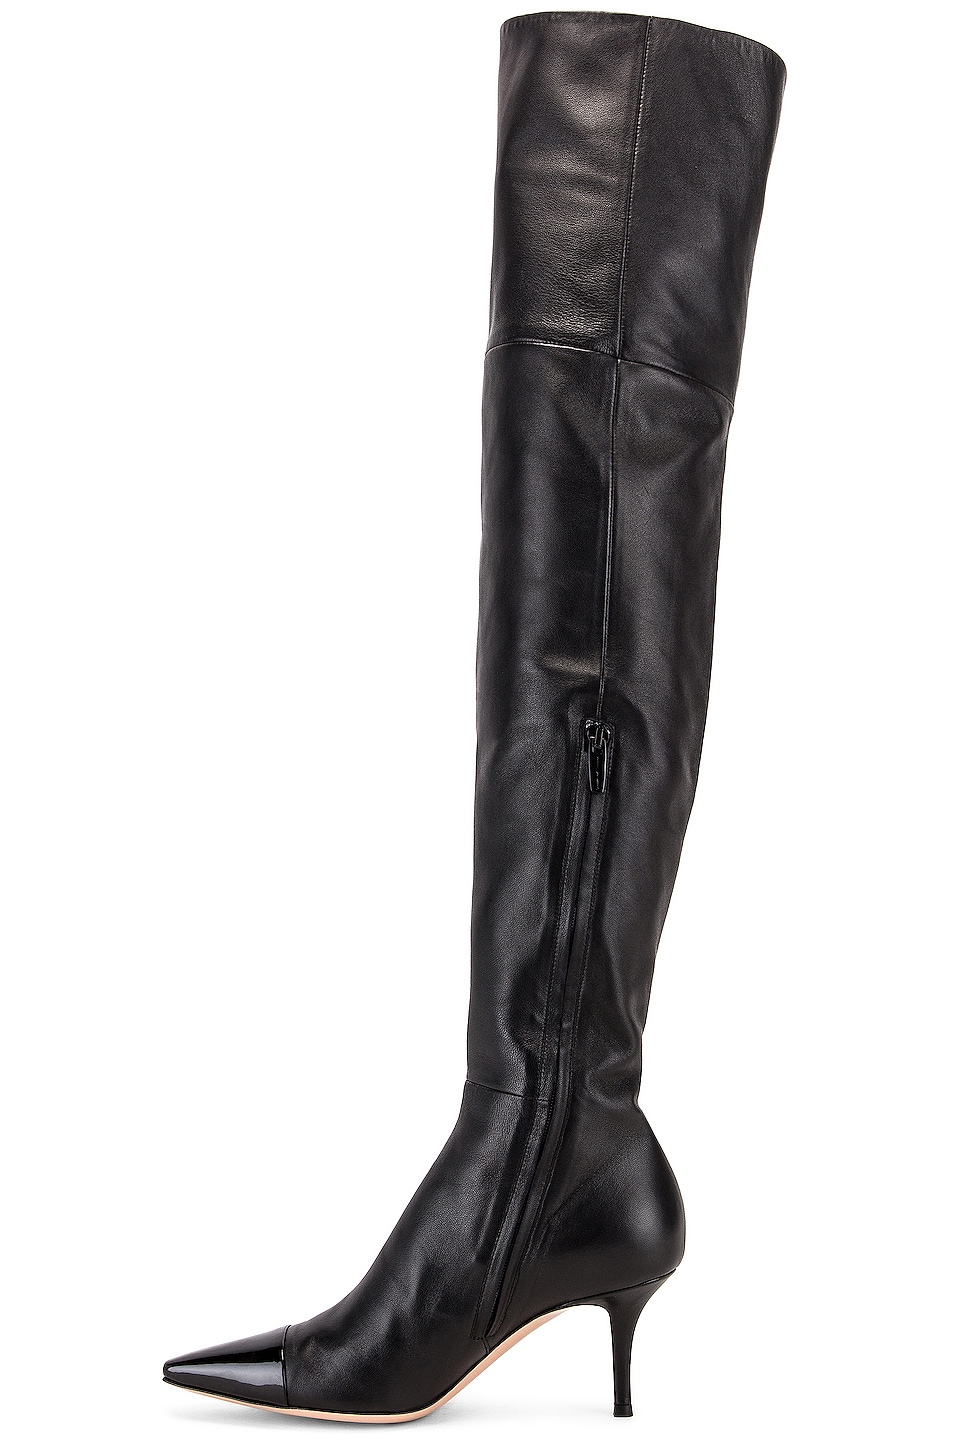 Image 5 of Gianvito Rossi Over the Knee Toe Cap Boots in Black